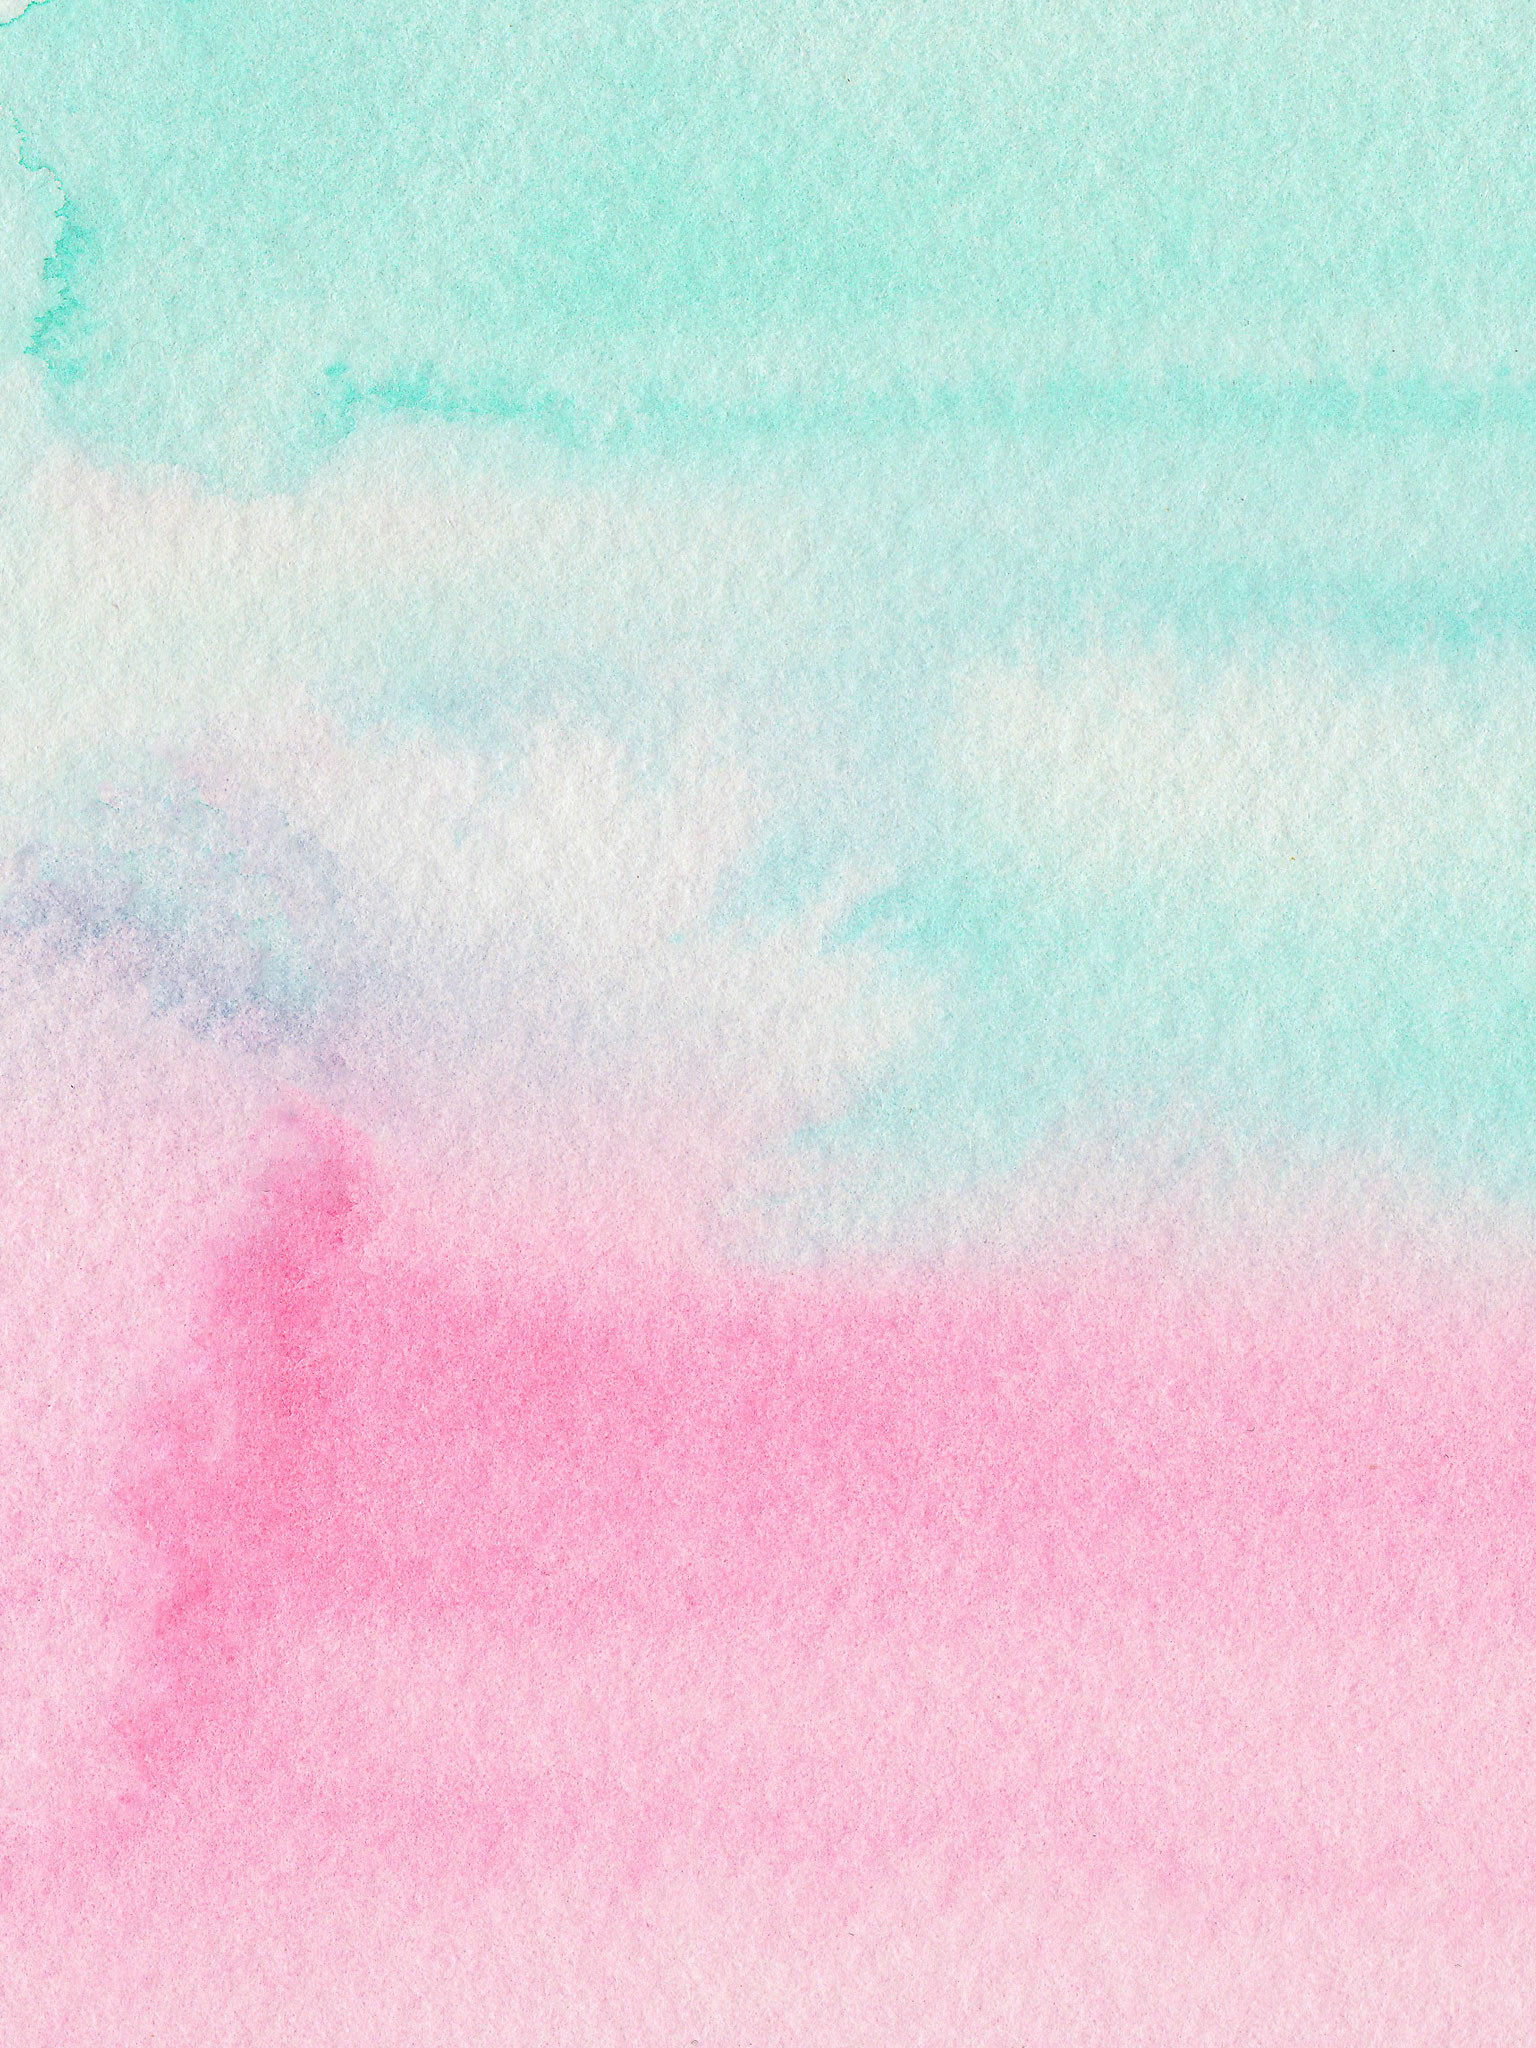 Pink Ombre Wallpaper 60 images 1536x2048